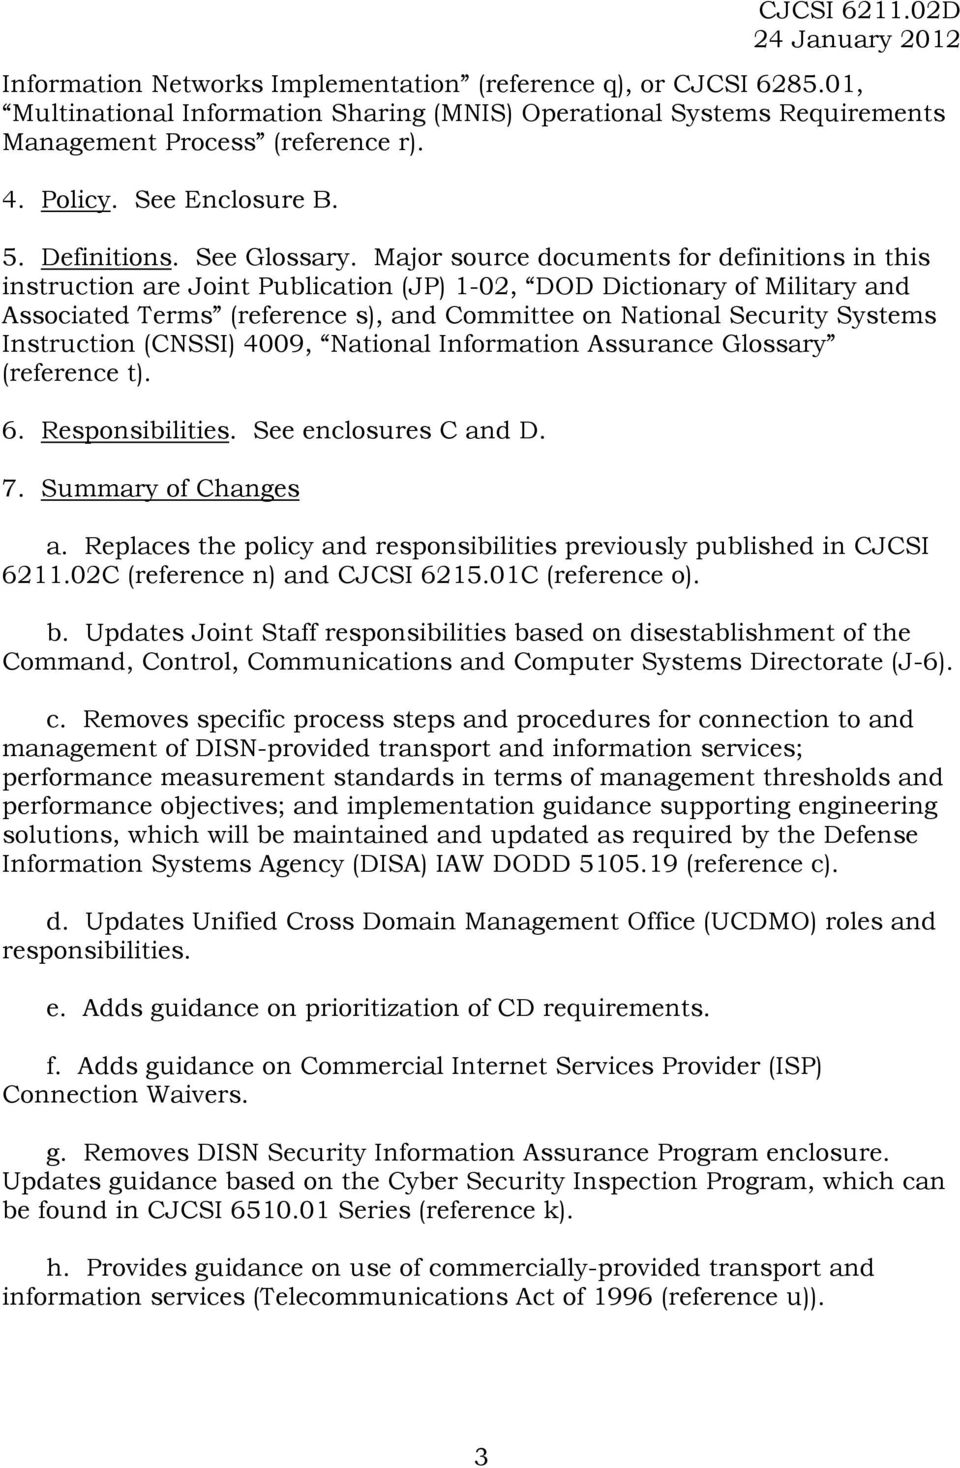 Major source documents for definitions in this instruction are Joint Publication (JP) 1-02, DOD Dictionary of Military and Associated Terms (reference s), and Committee on National Security Systems